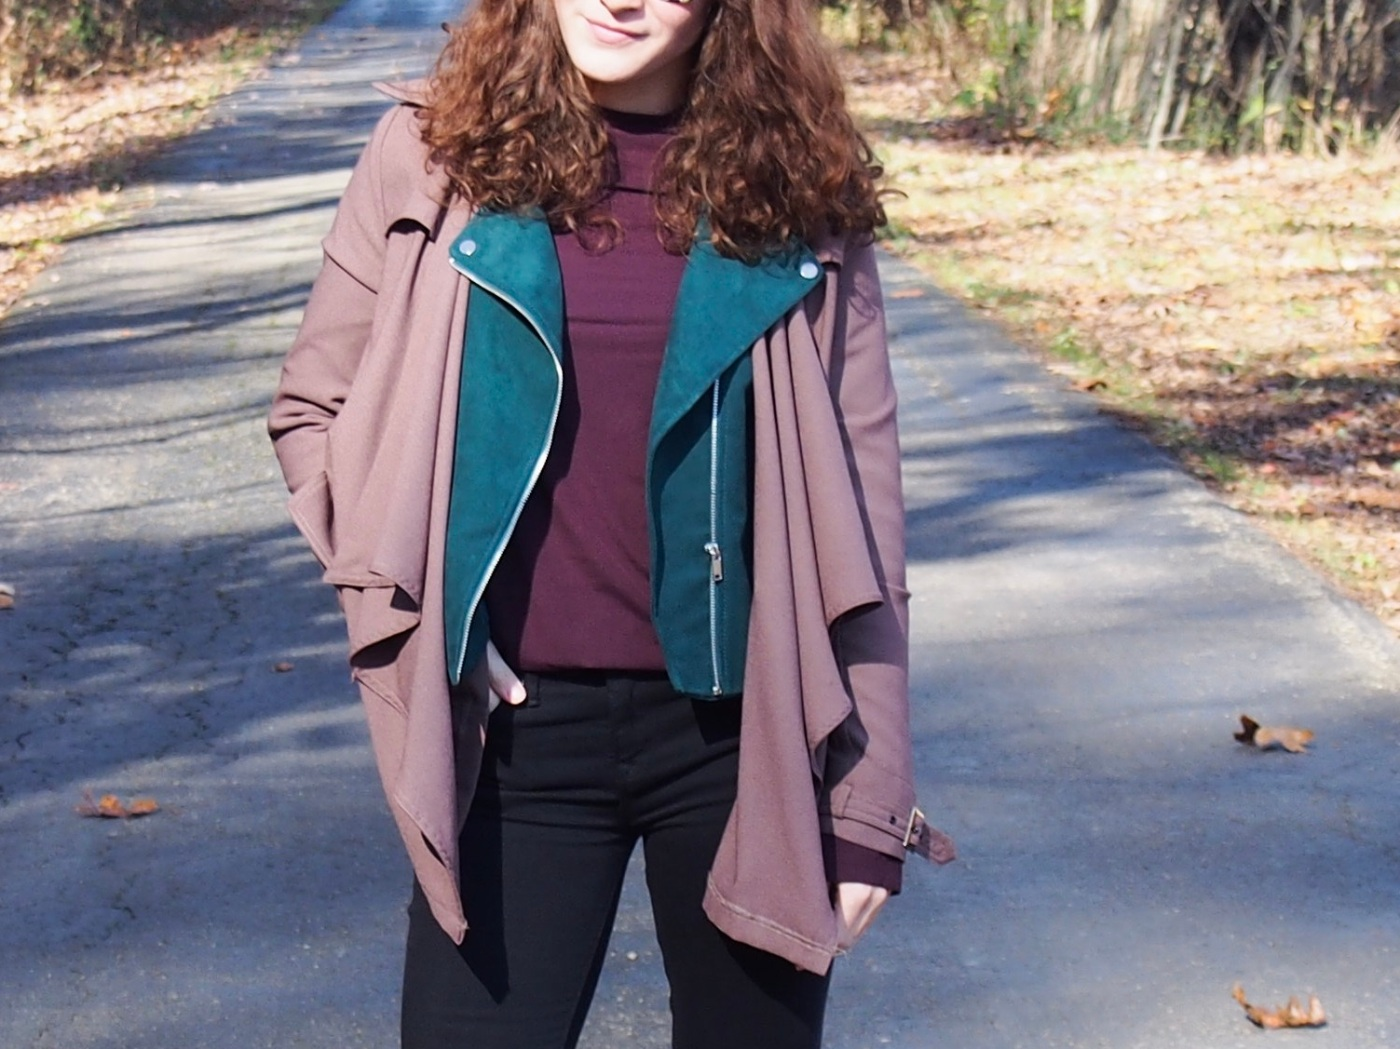 Layered jackets